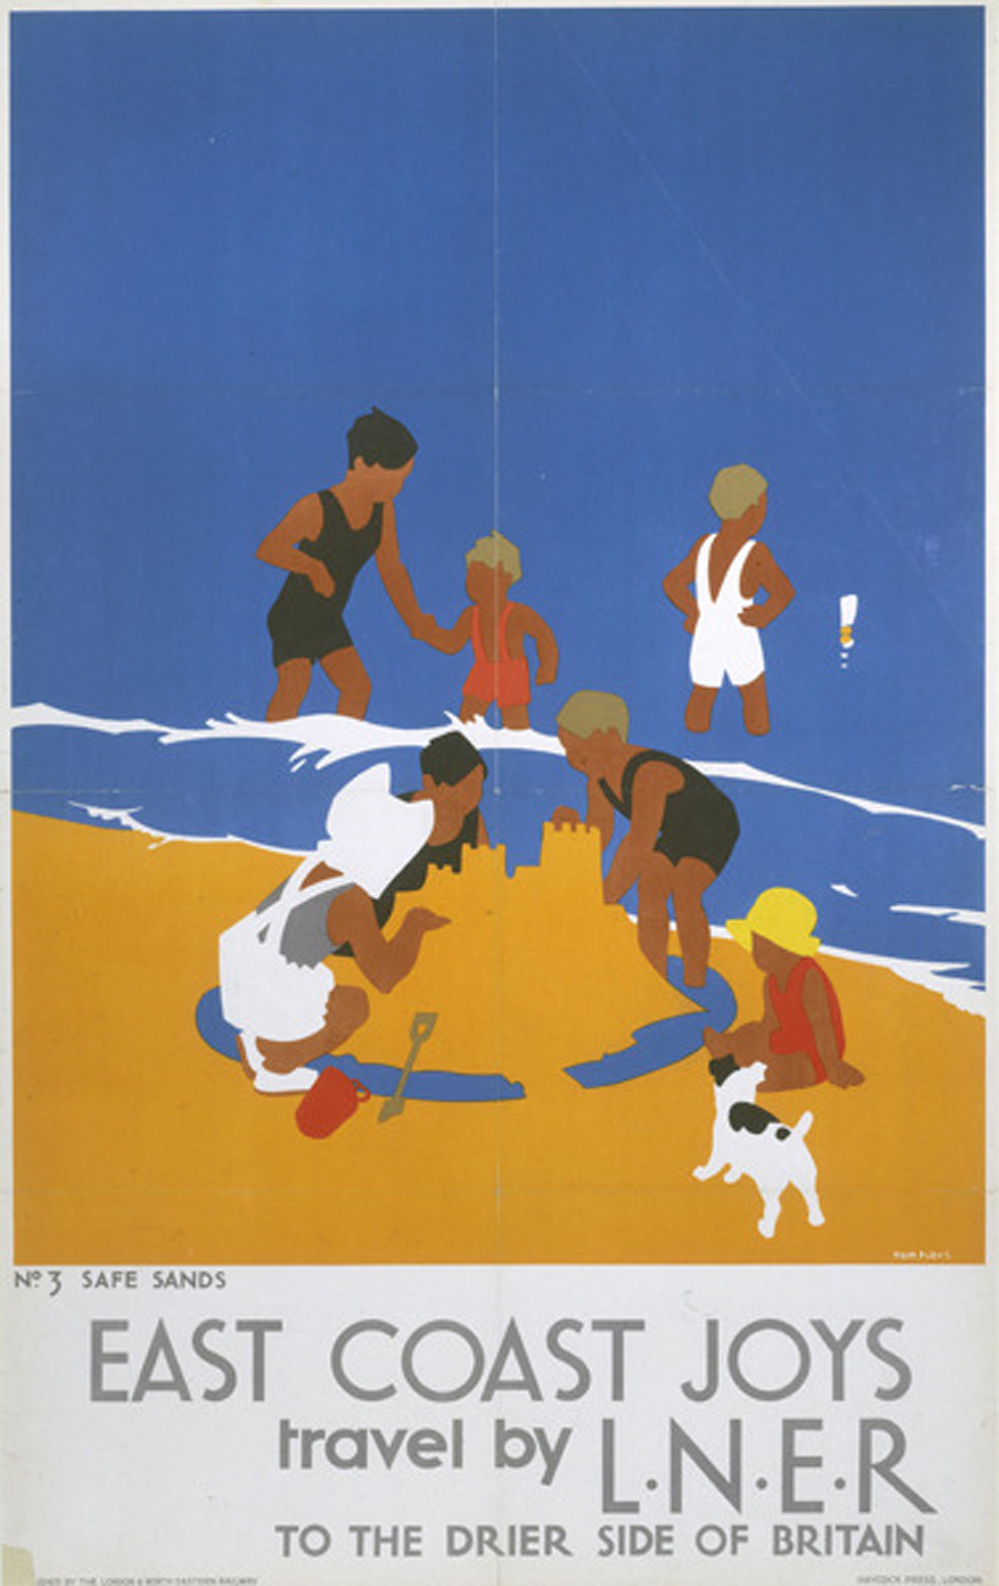 Tom Purvis, posters for LNER